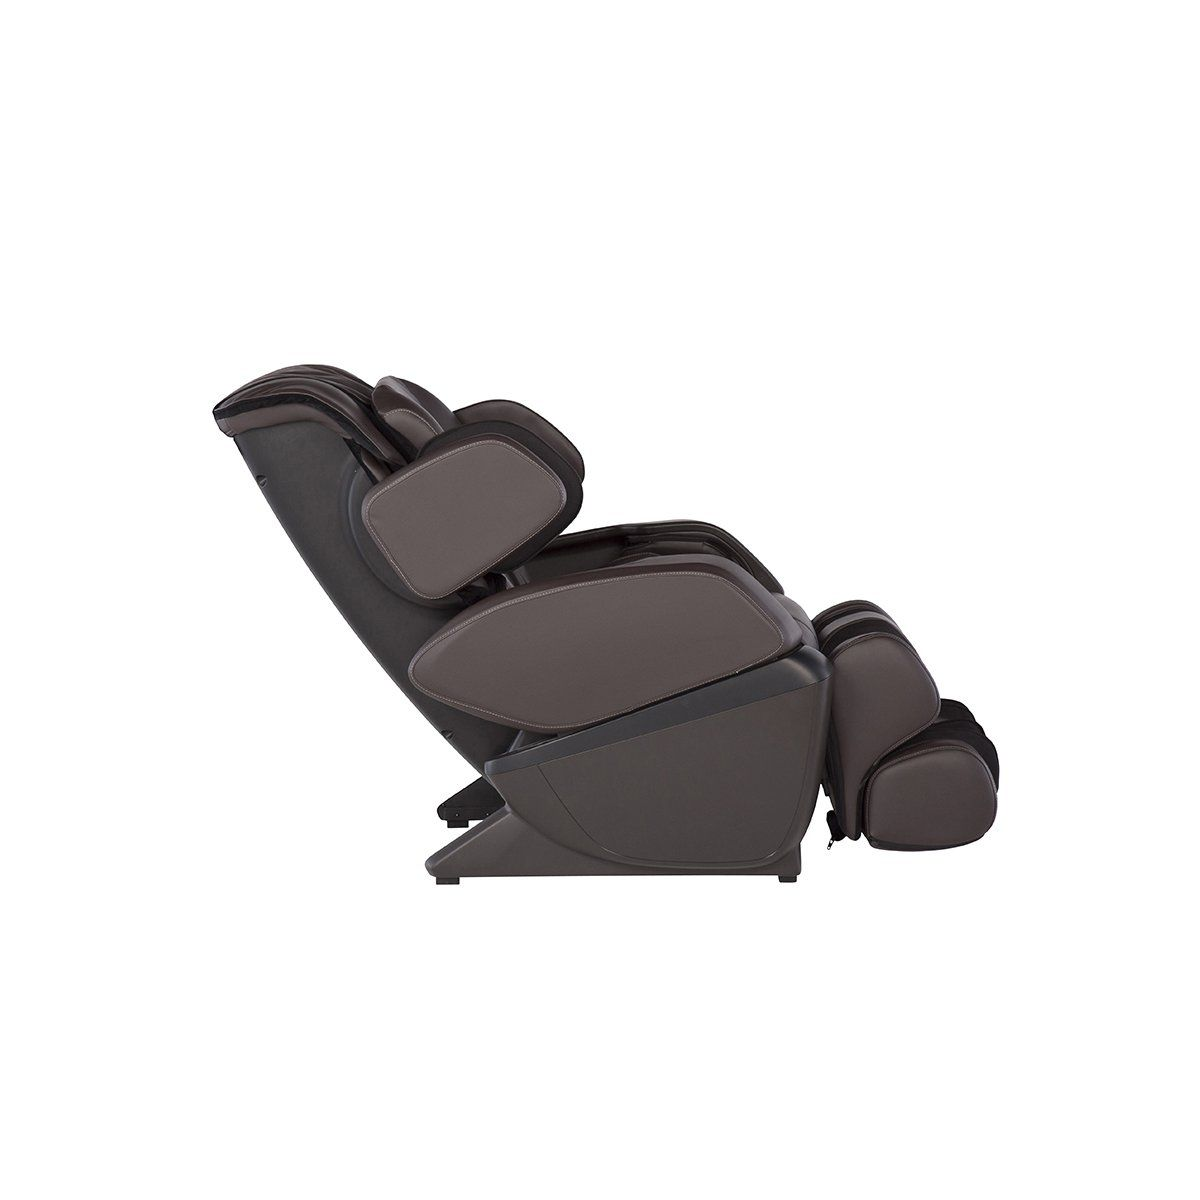 Human Touch Forti Amazonexclusive Limited Edition Fullbody Shiatsu Massage Chair Espresso Color Option Shiatsu Massage Chair Massage Chair Shiatsu Massage